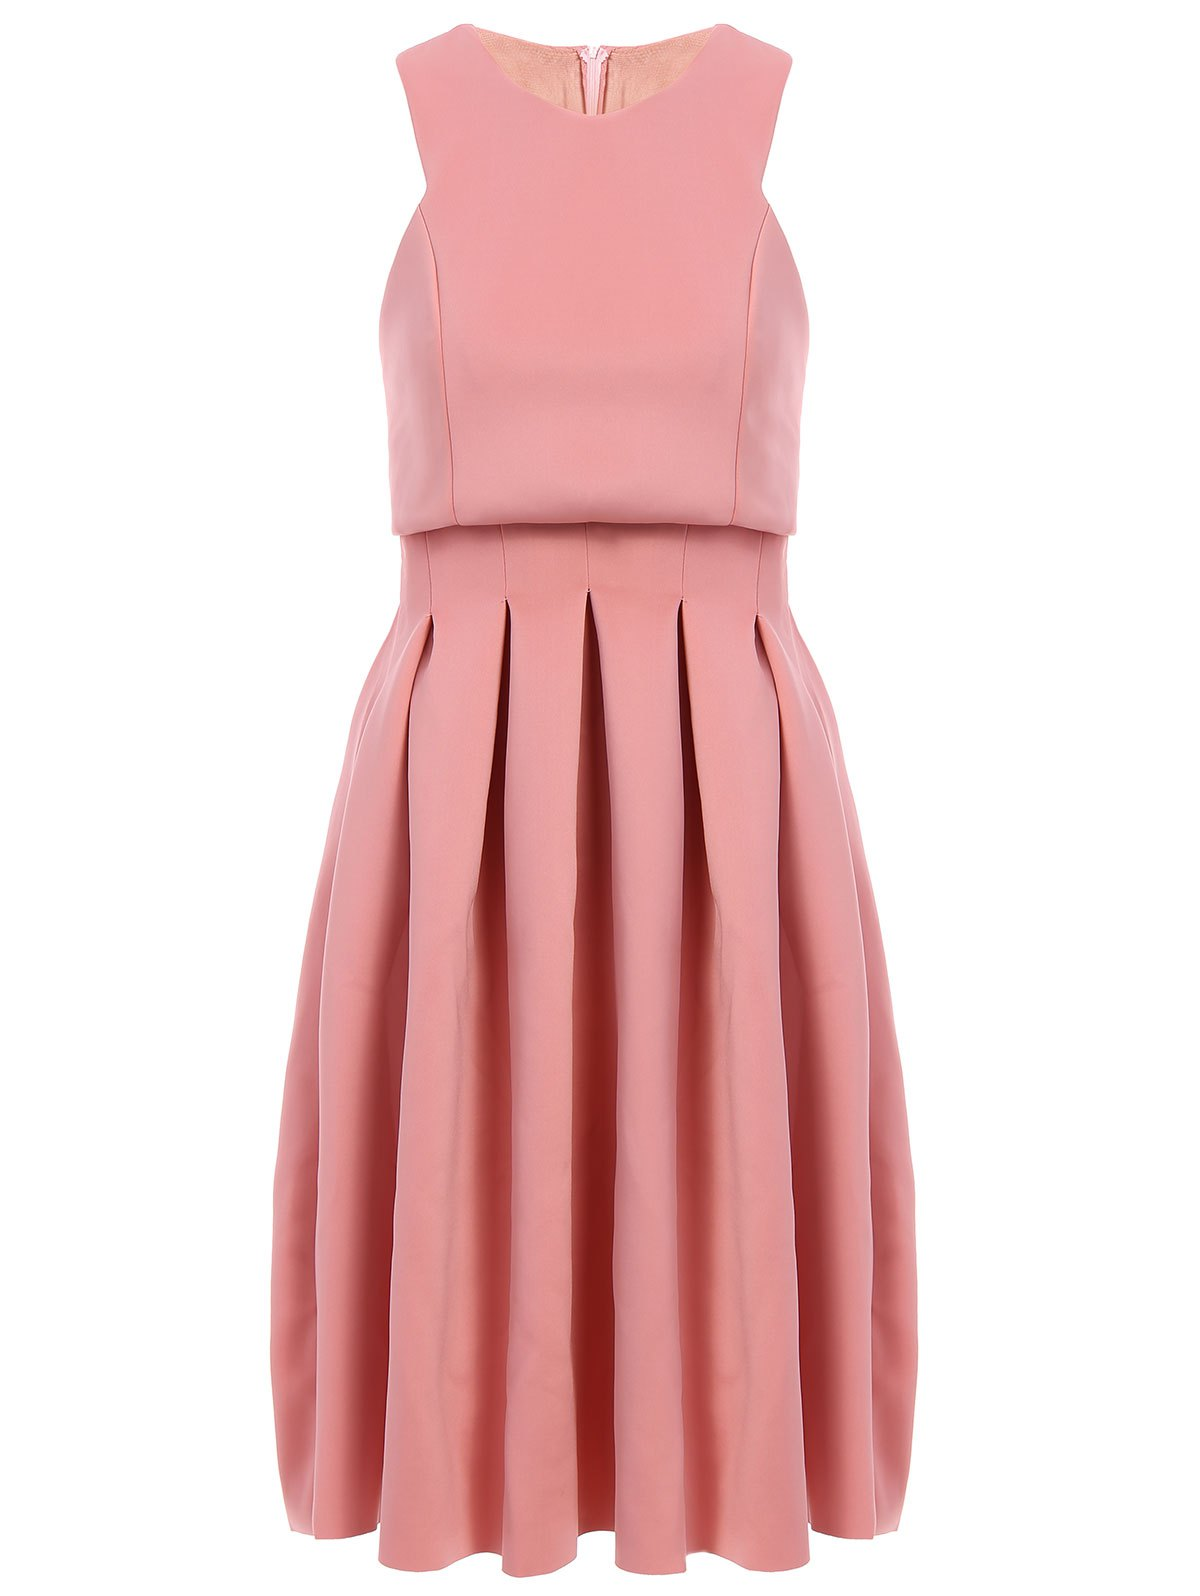 Stylish Women's Round Collar Sleeveless Pleated Dress - ORANGEPINK M